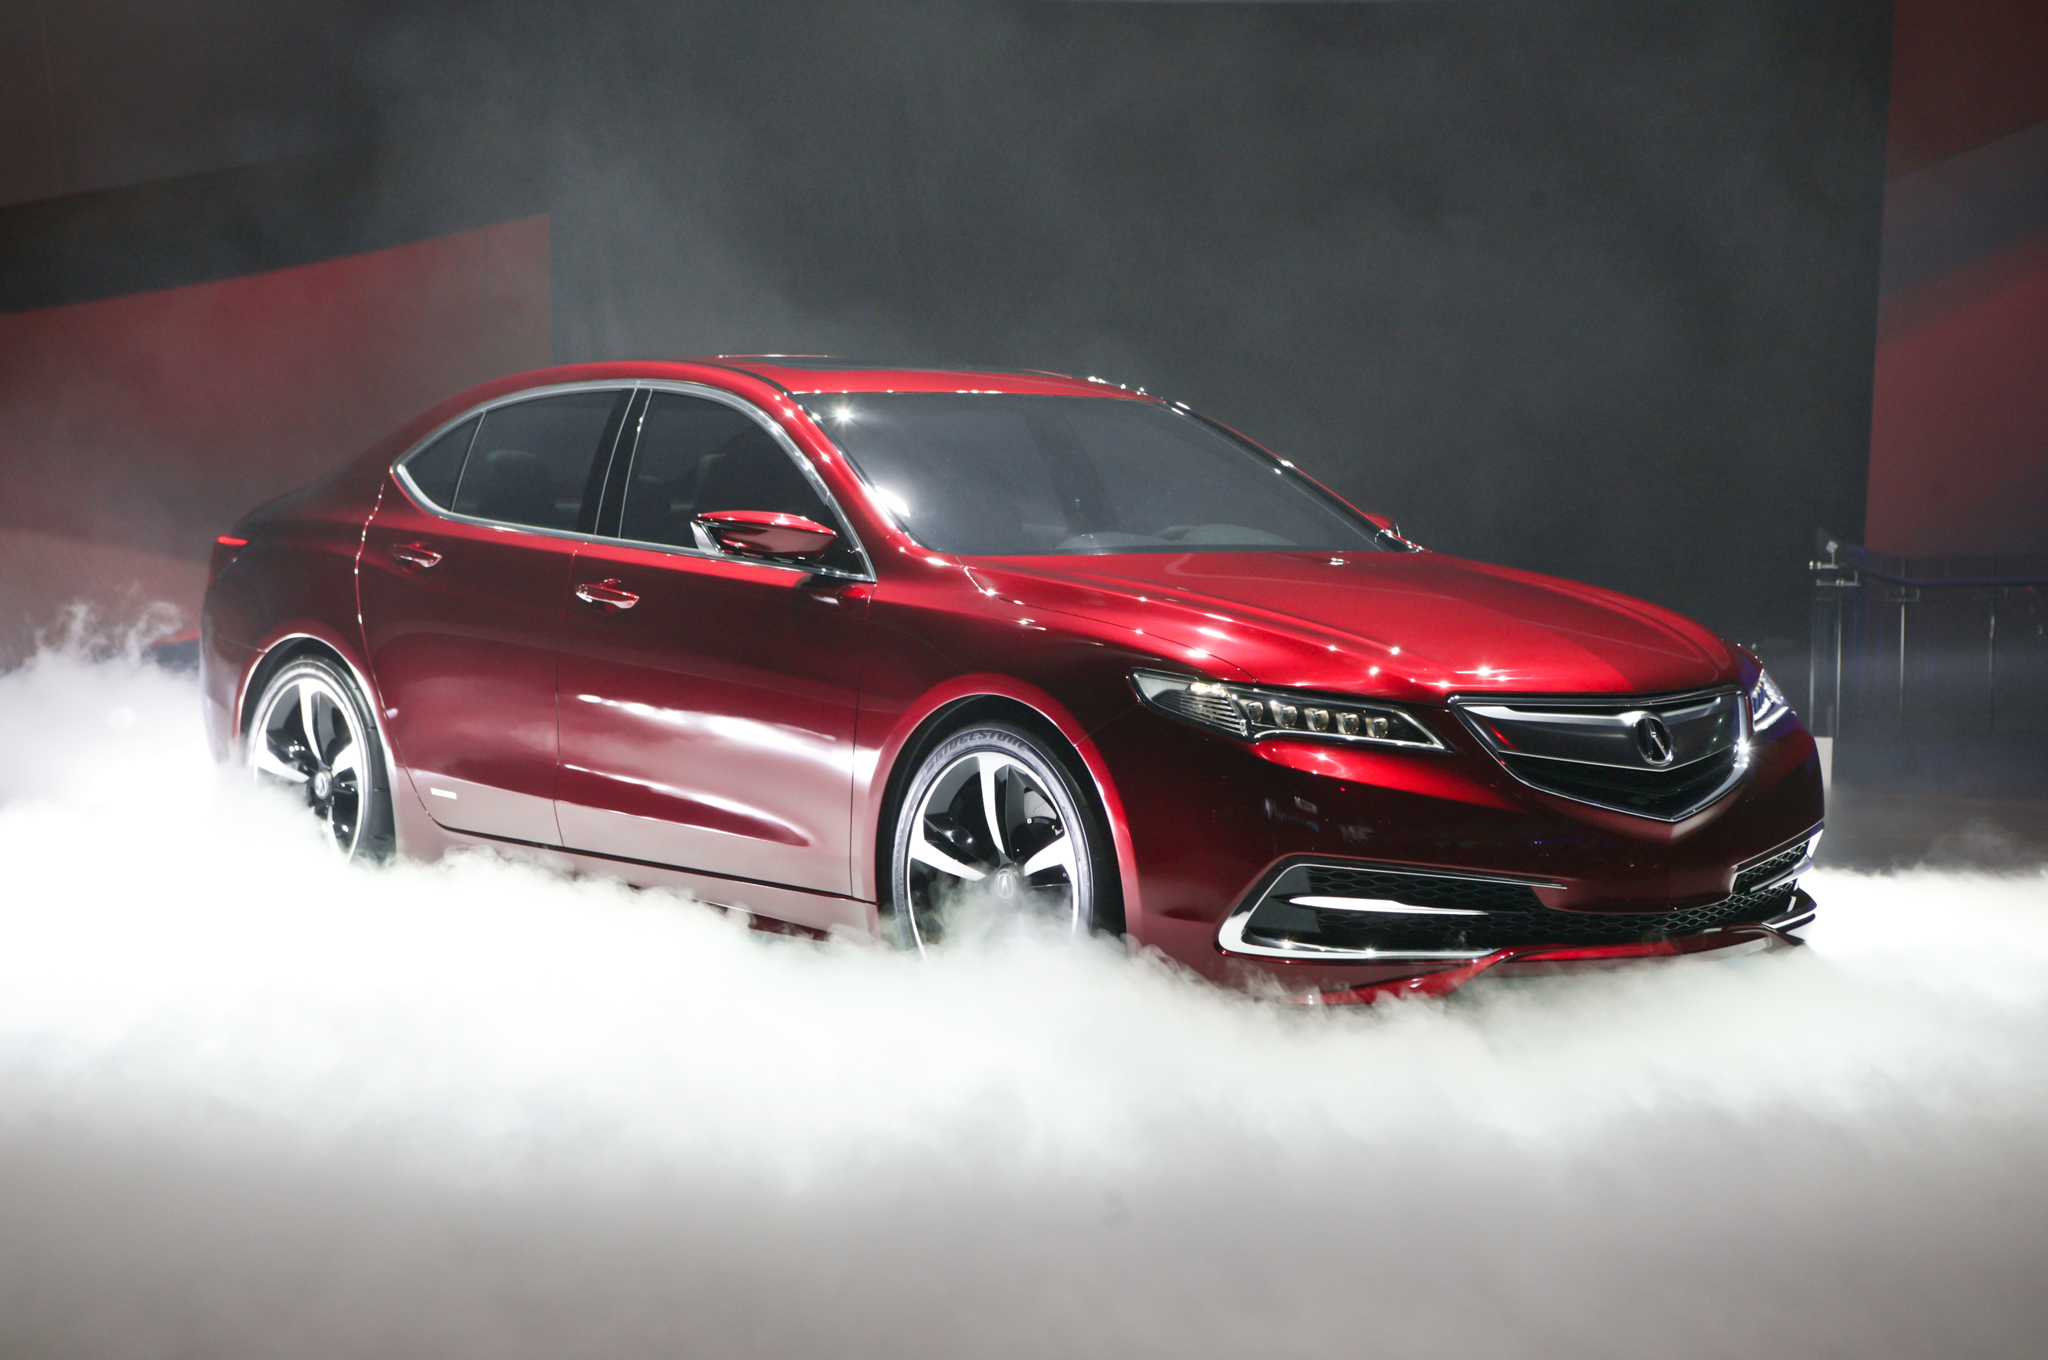 acura tlx prototype unveiled, brings sexy back to brand